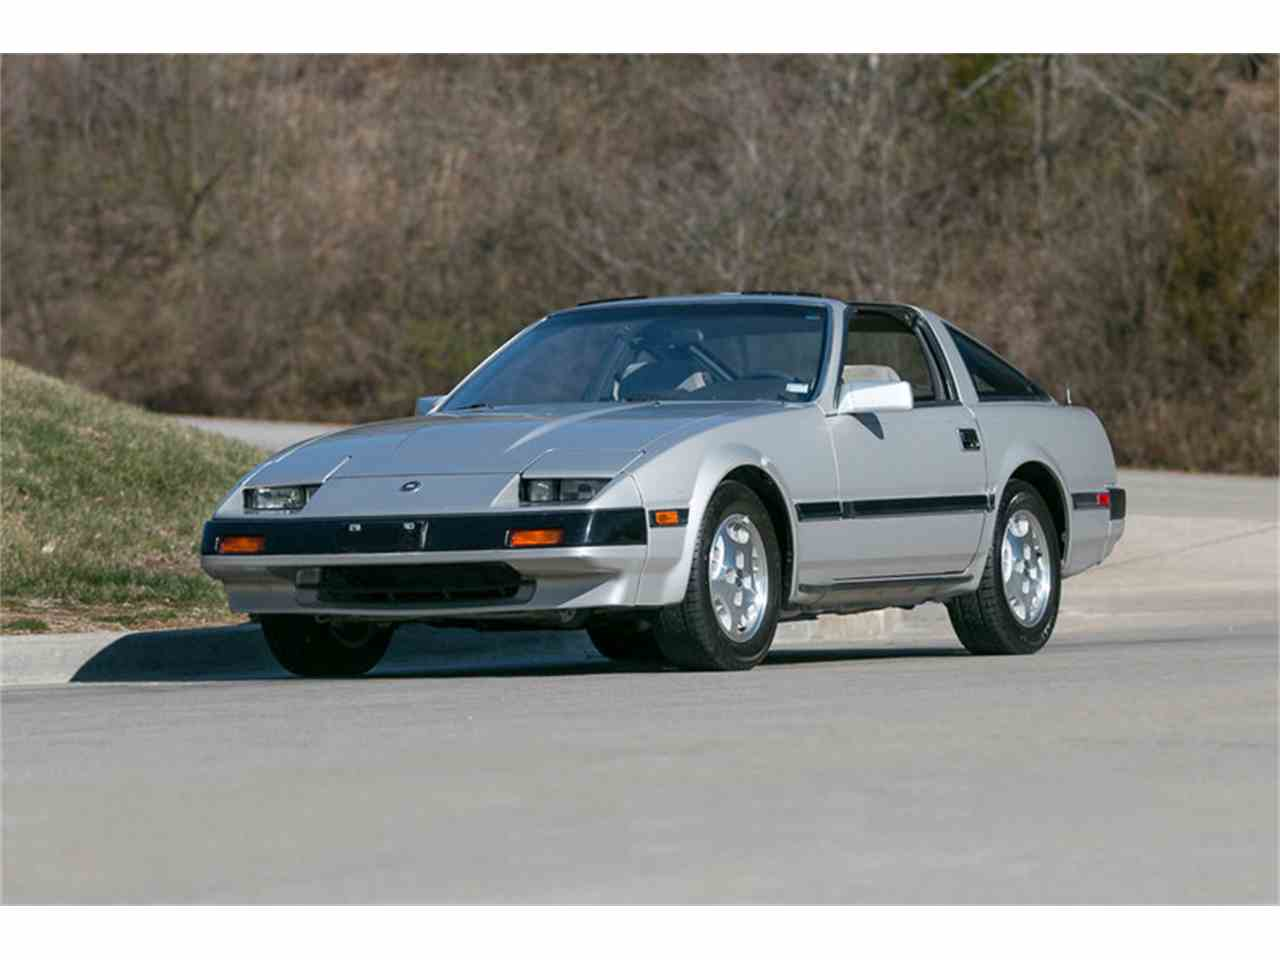 Large Picture of 1985 300ZX located in St. Charles Missouri - $7,995.00 - KQ4P